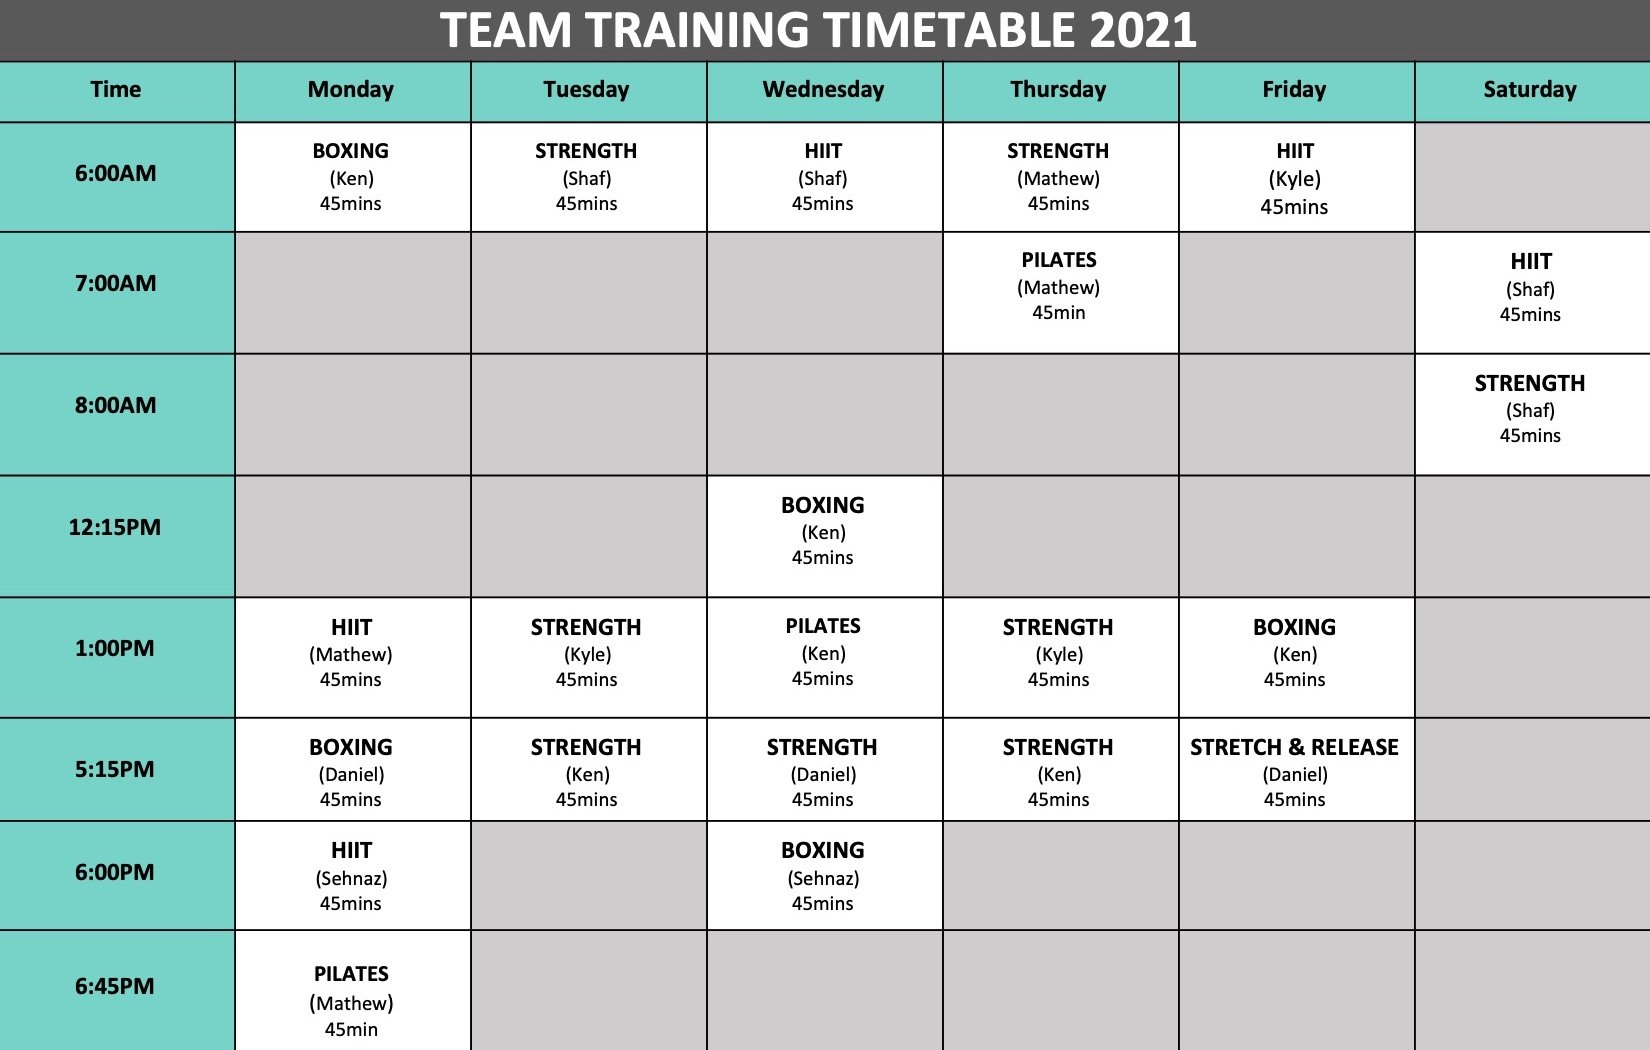 Team Training Timetable 2021 (cropped)